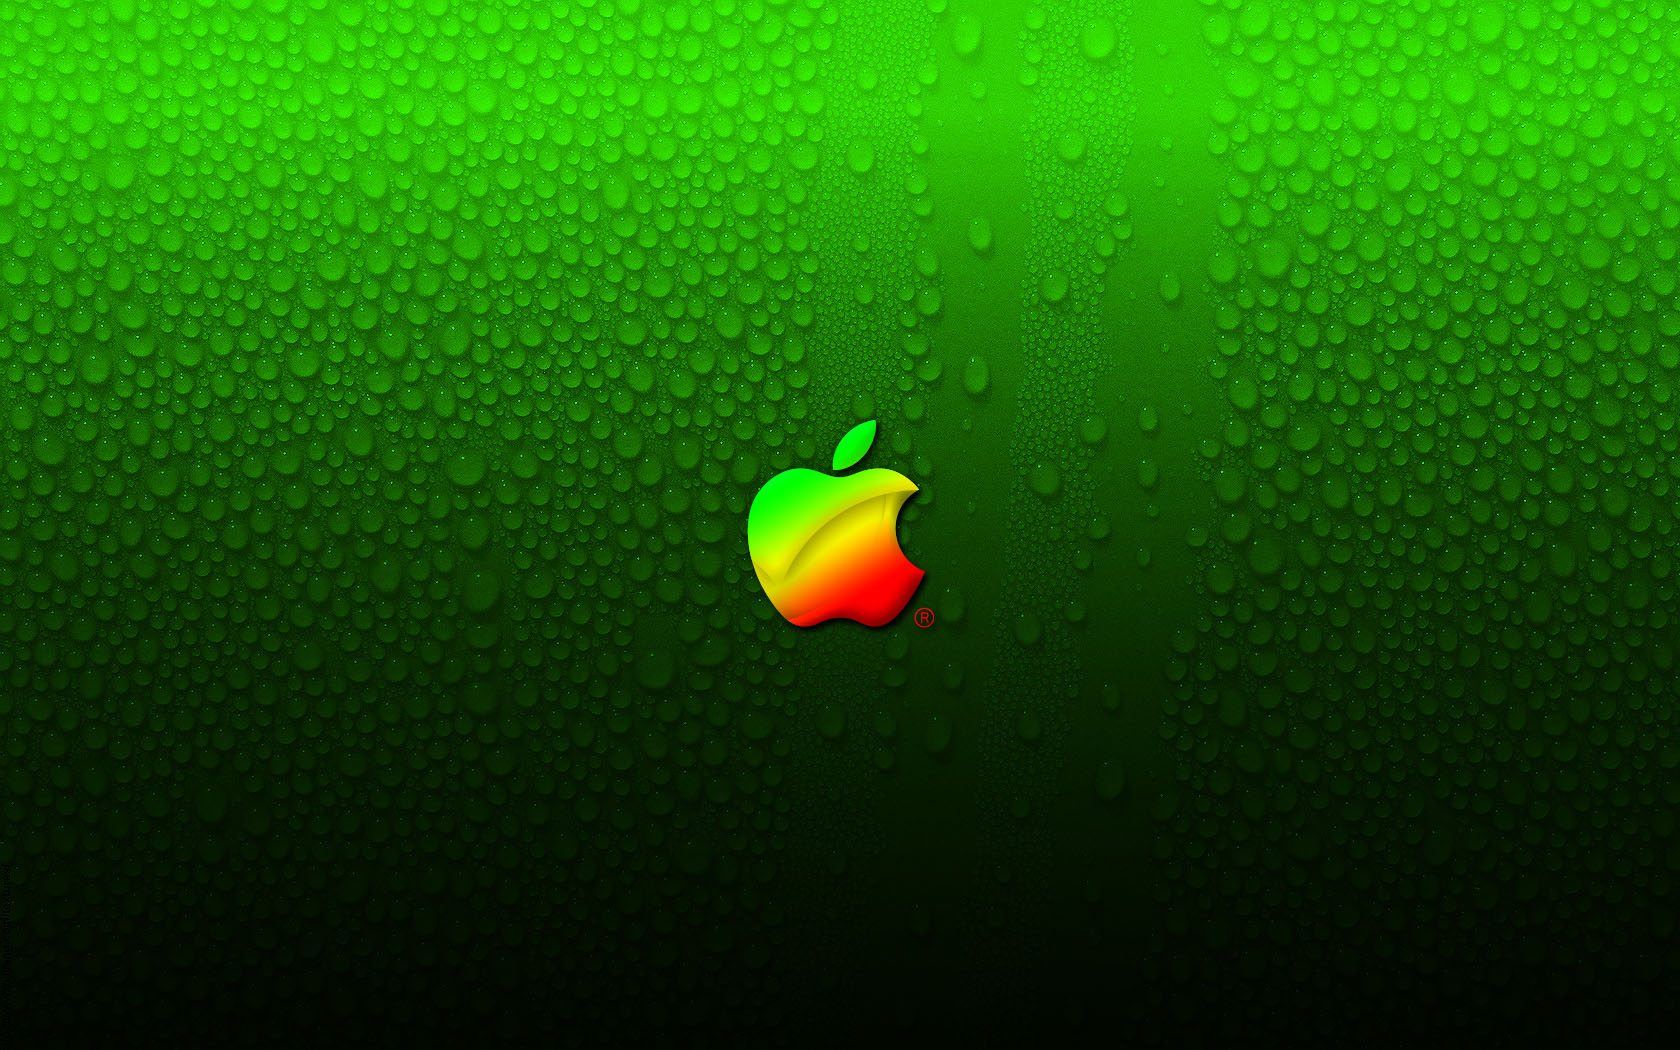 Green Apple Logo Wallpaper - Green Apple Logo Wallpaper By A